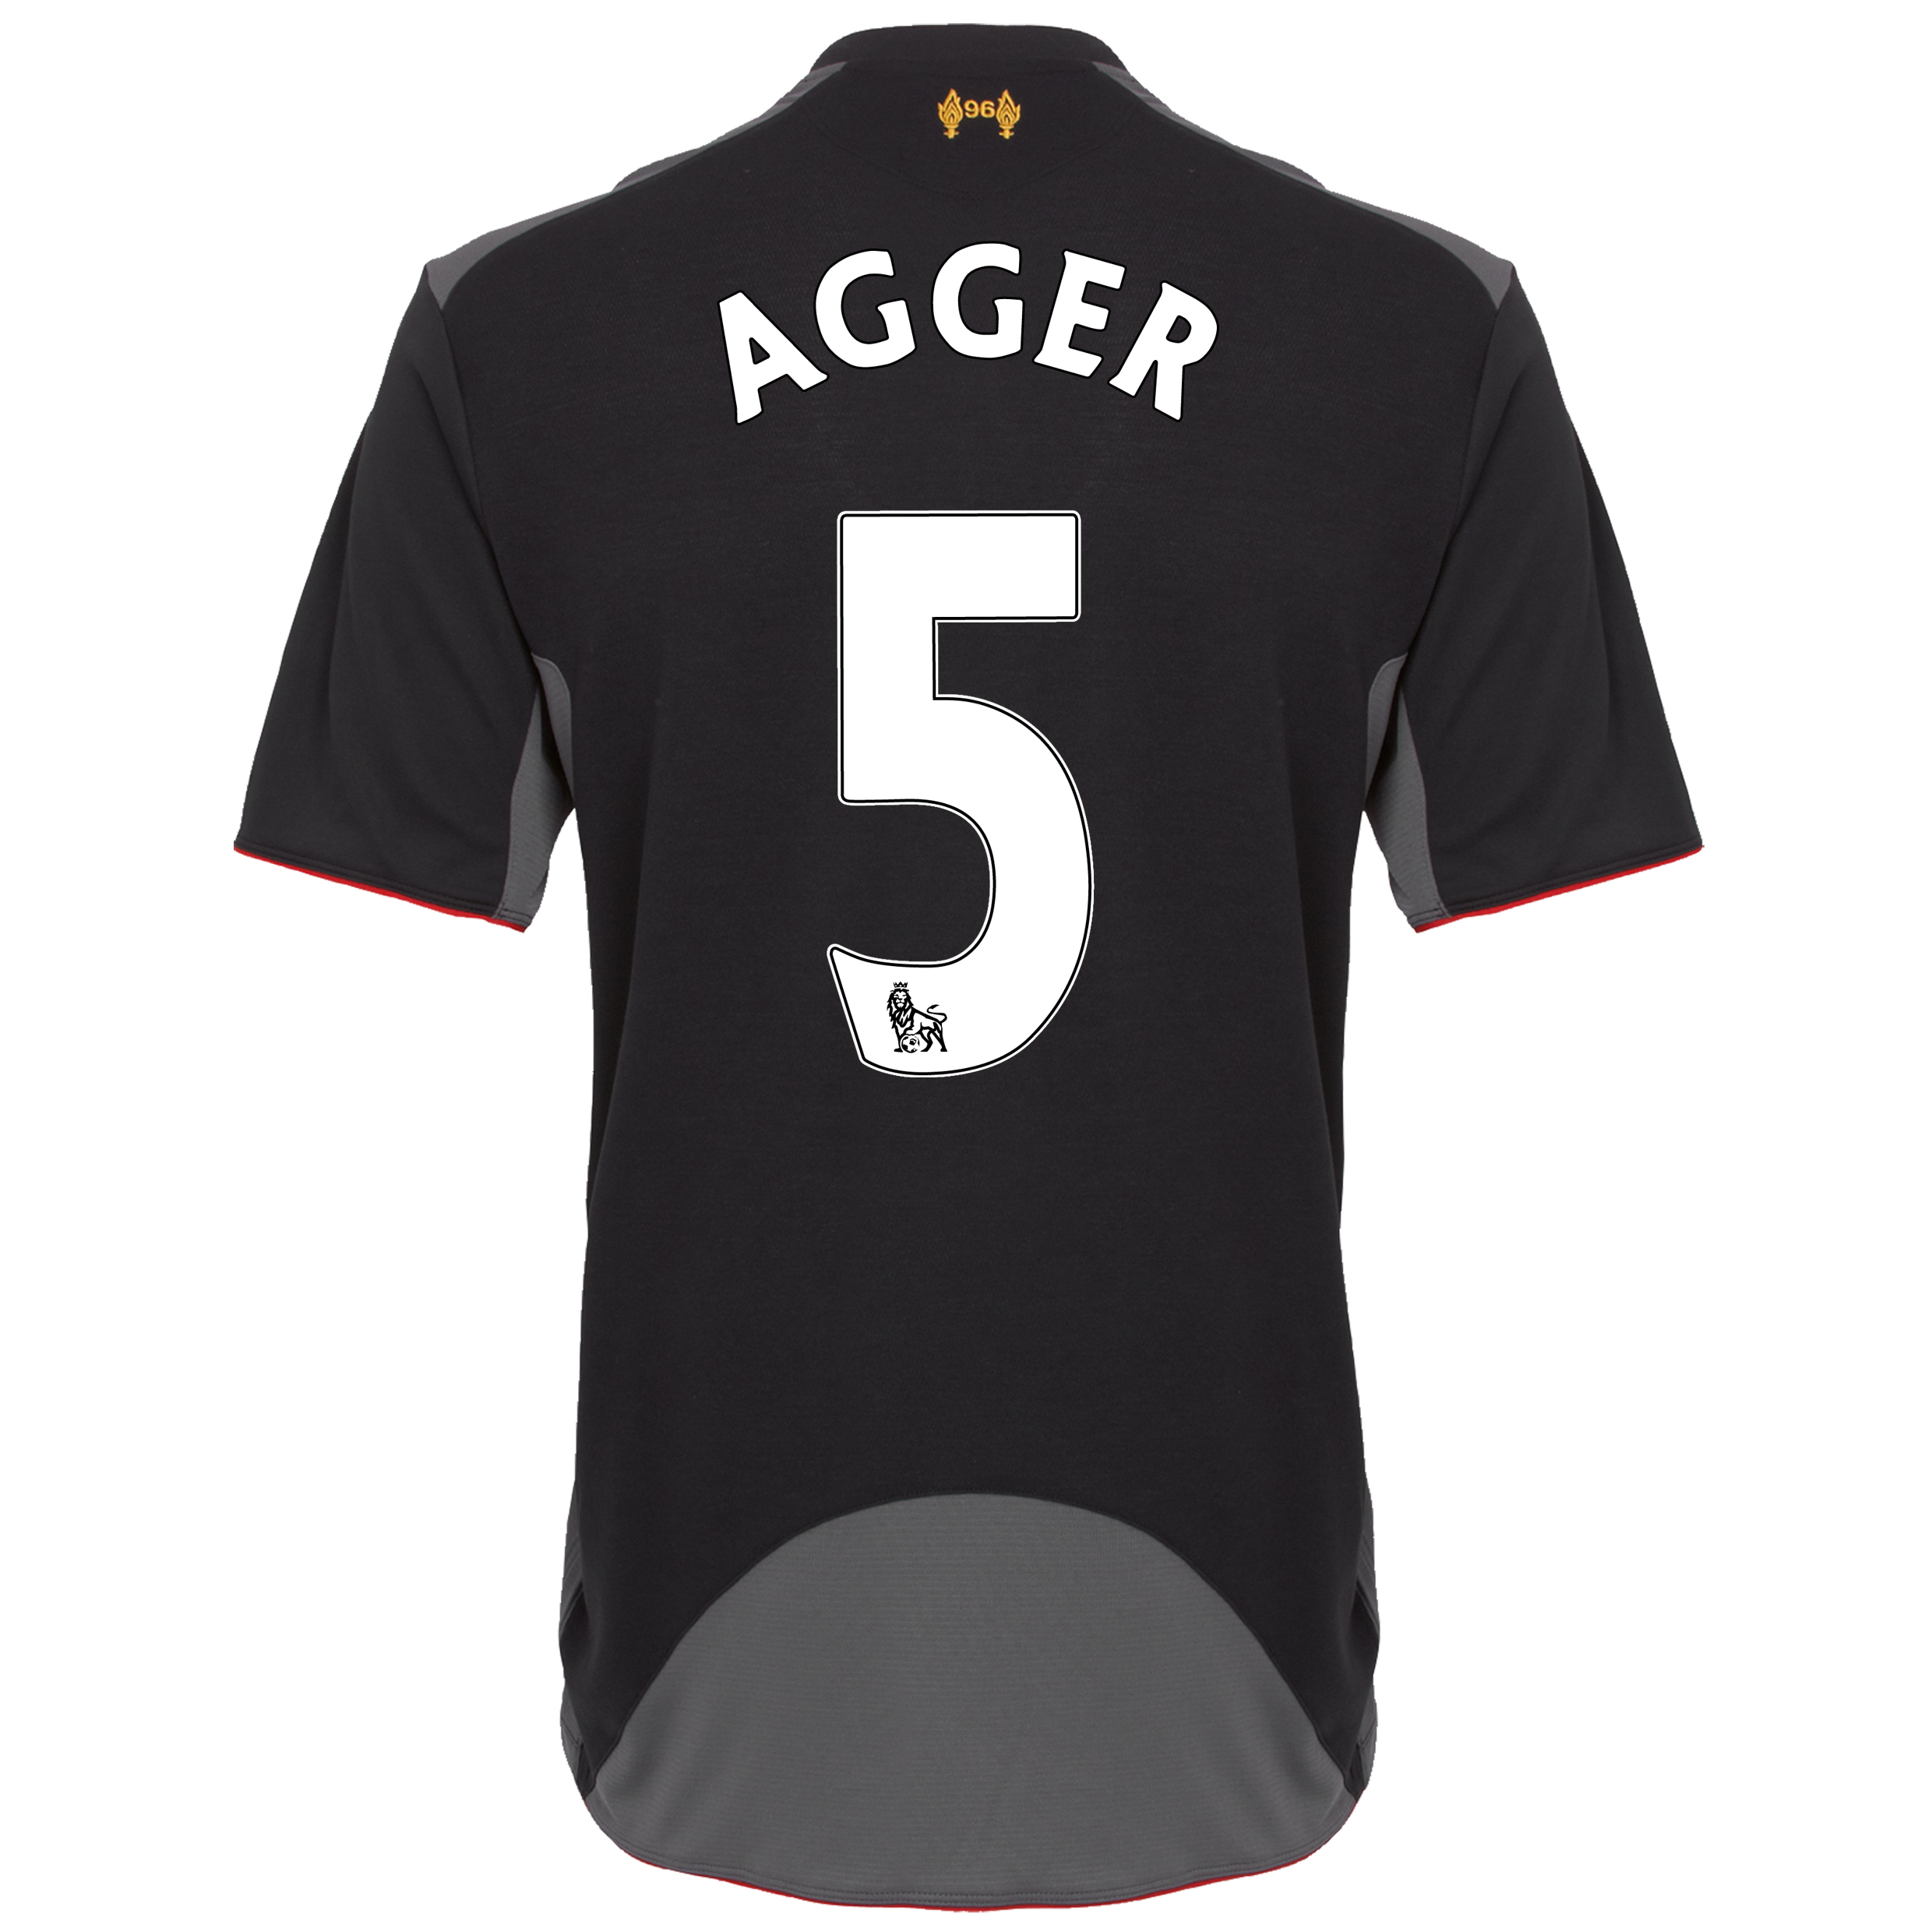 Liverpool Away Shirt 2012/13 with Agger 5 printing